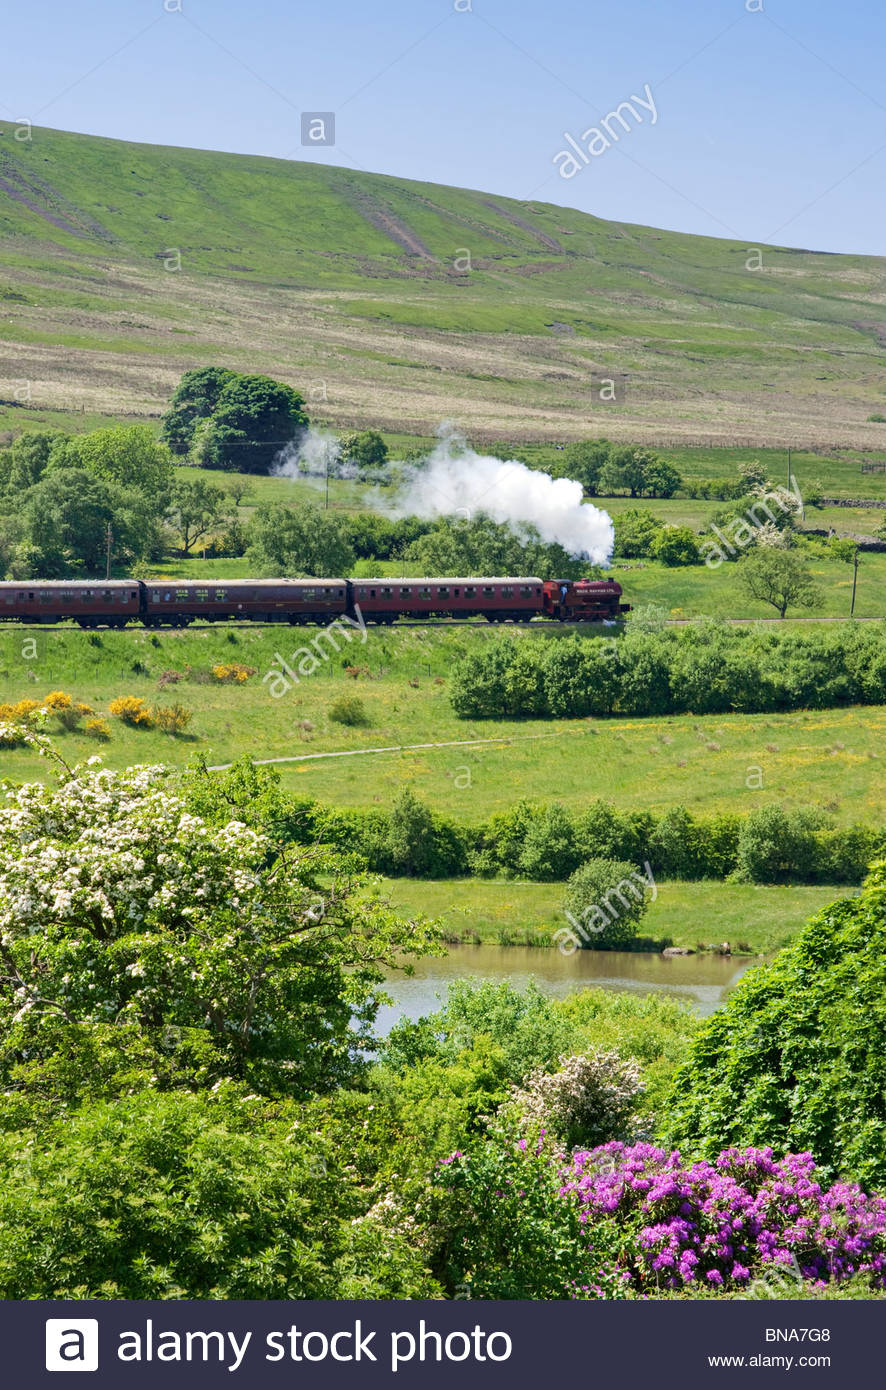 Steam train in Welsh landscape, Garn Lakes, Gwent, Wales, UK - Stock Image